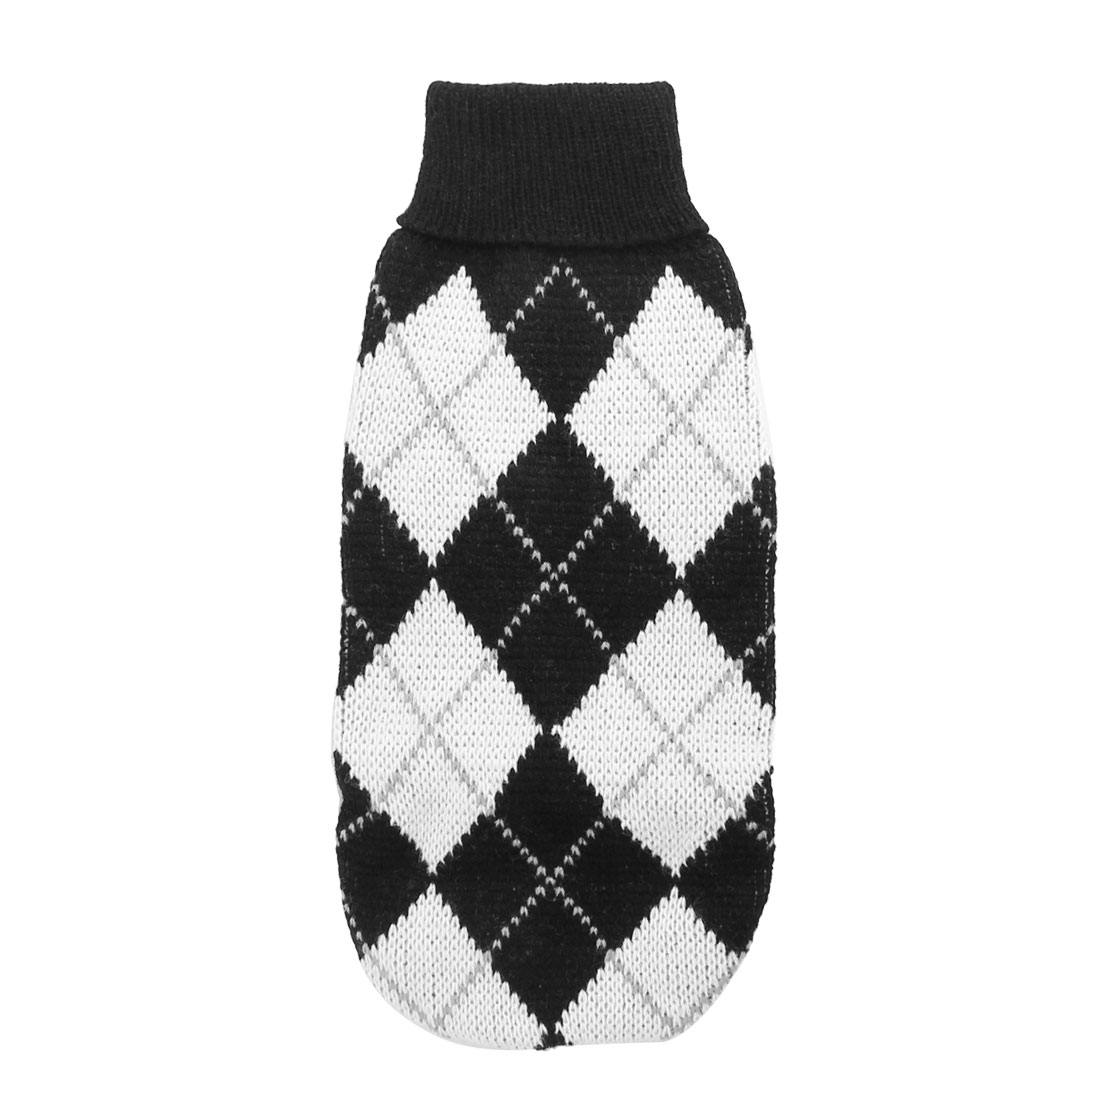 Unique Bargains Winter Turtleneck Ribbed Cuff Pet Dog Yorkie Clothes Sweater Black White XS